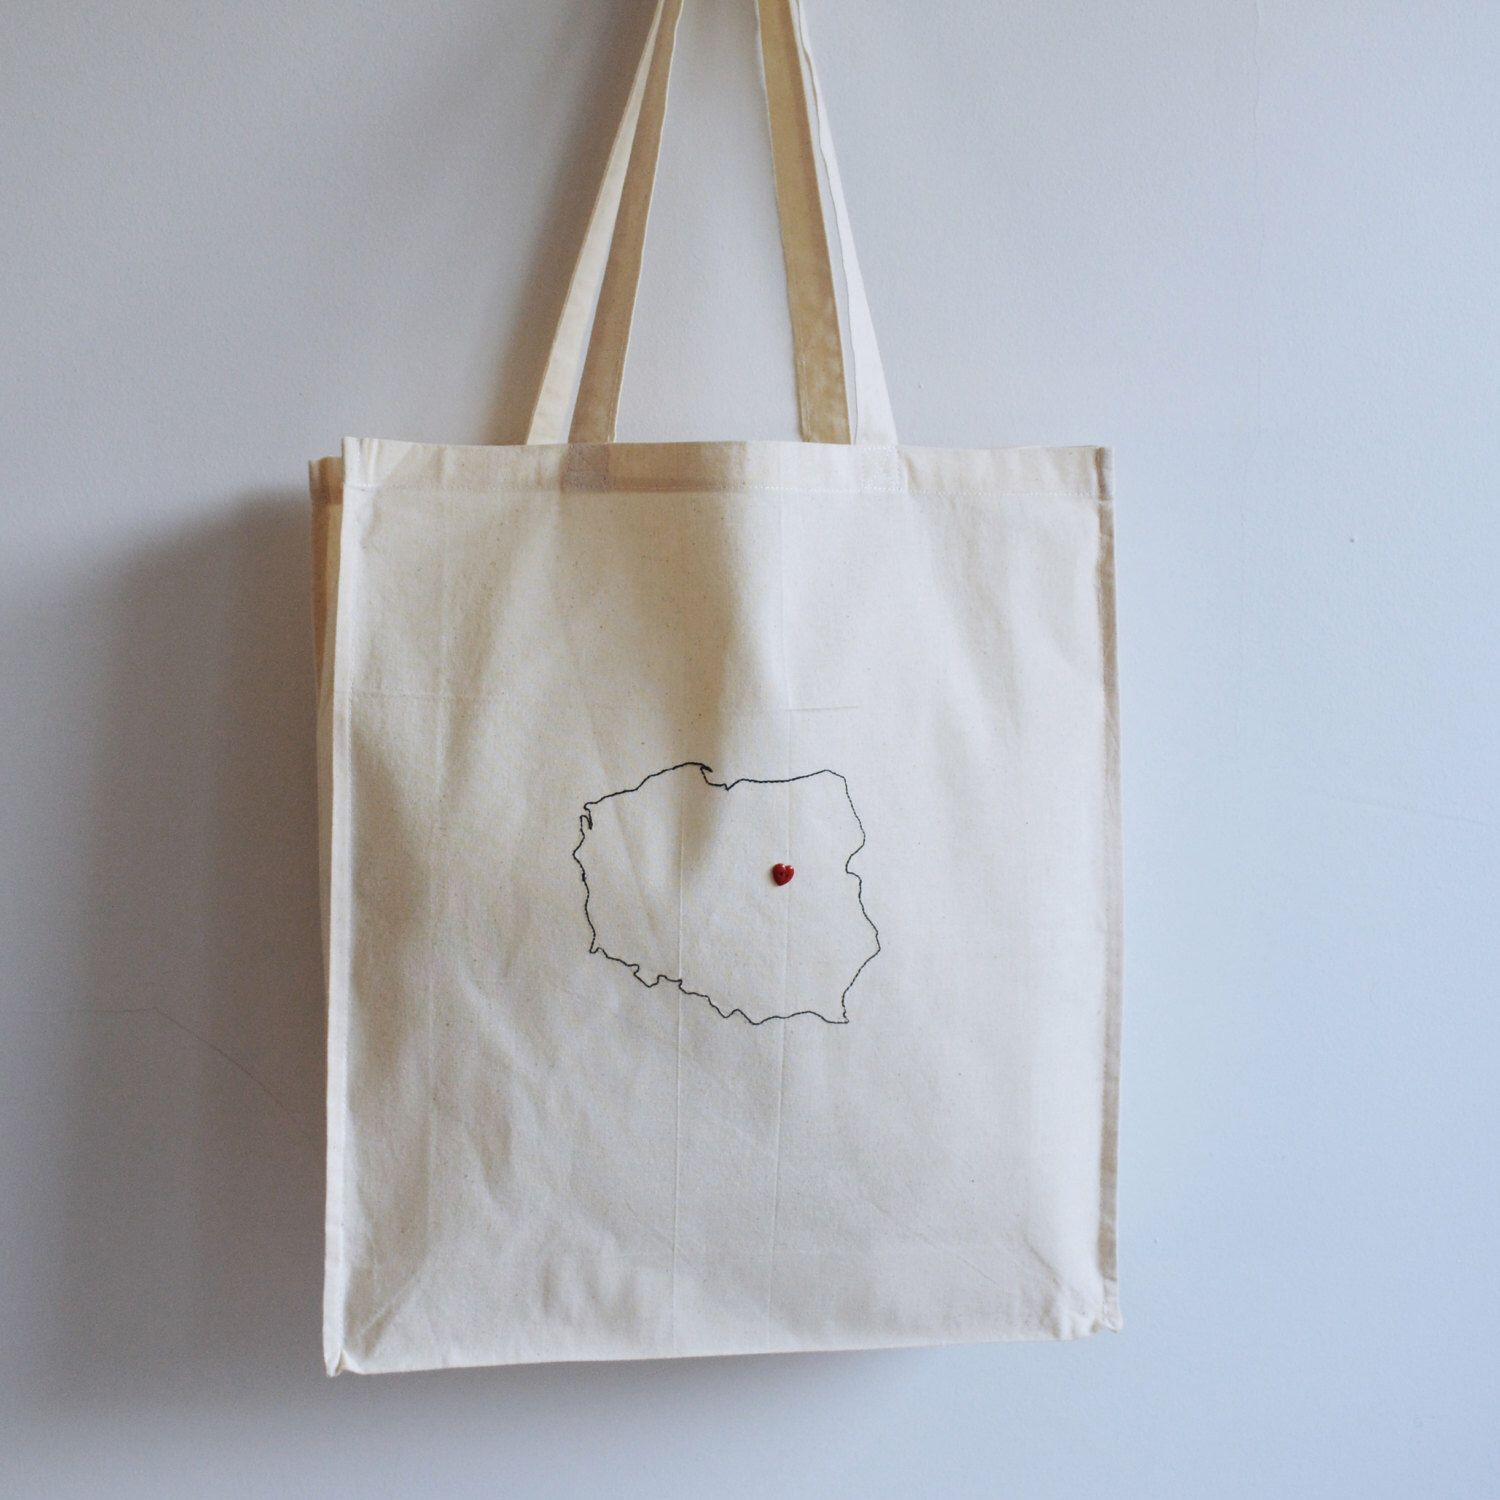 Pin by Lésty Petite on Wedding Personalized tote bags